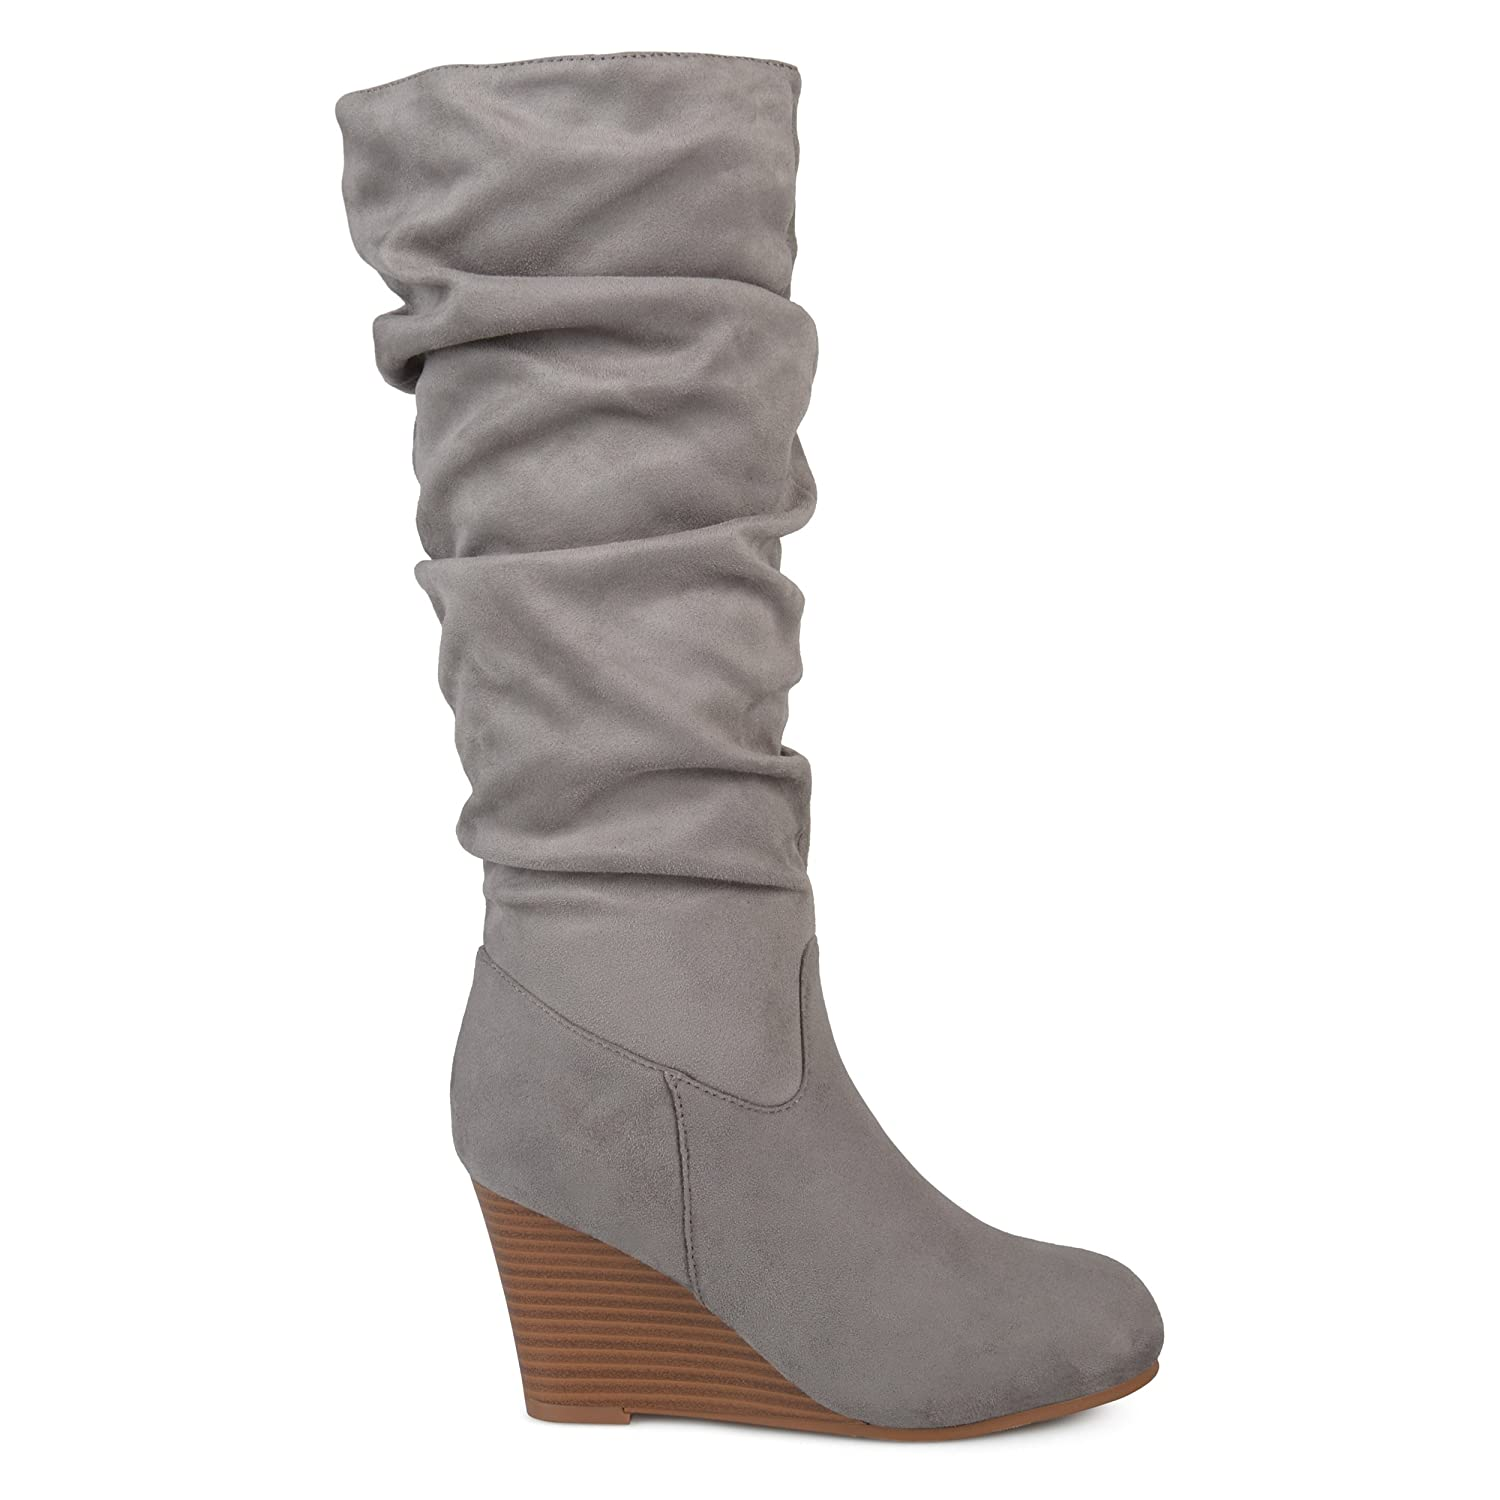 3187359df4d6f Womens Regular and Wide Calf Slouchy Faux Suede Mid-Calf Wedge Boots Grey,  7.5 Regular US | Mid-Calf